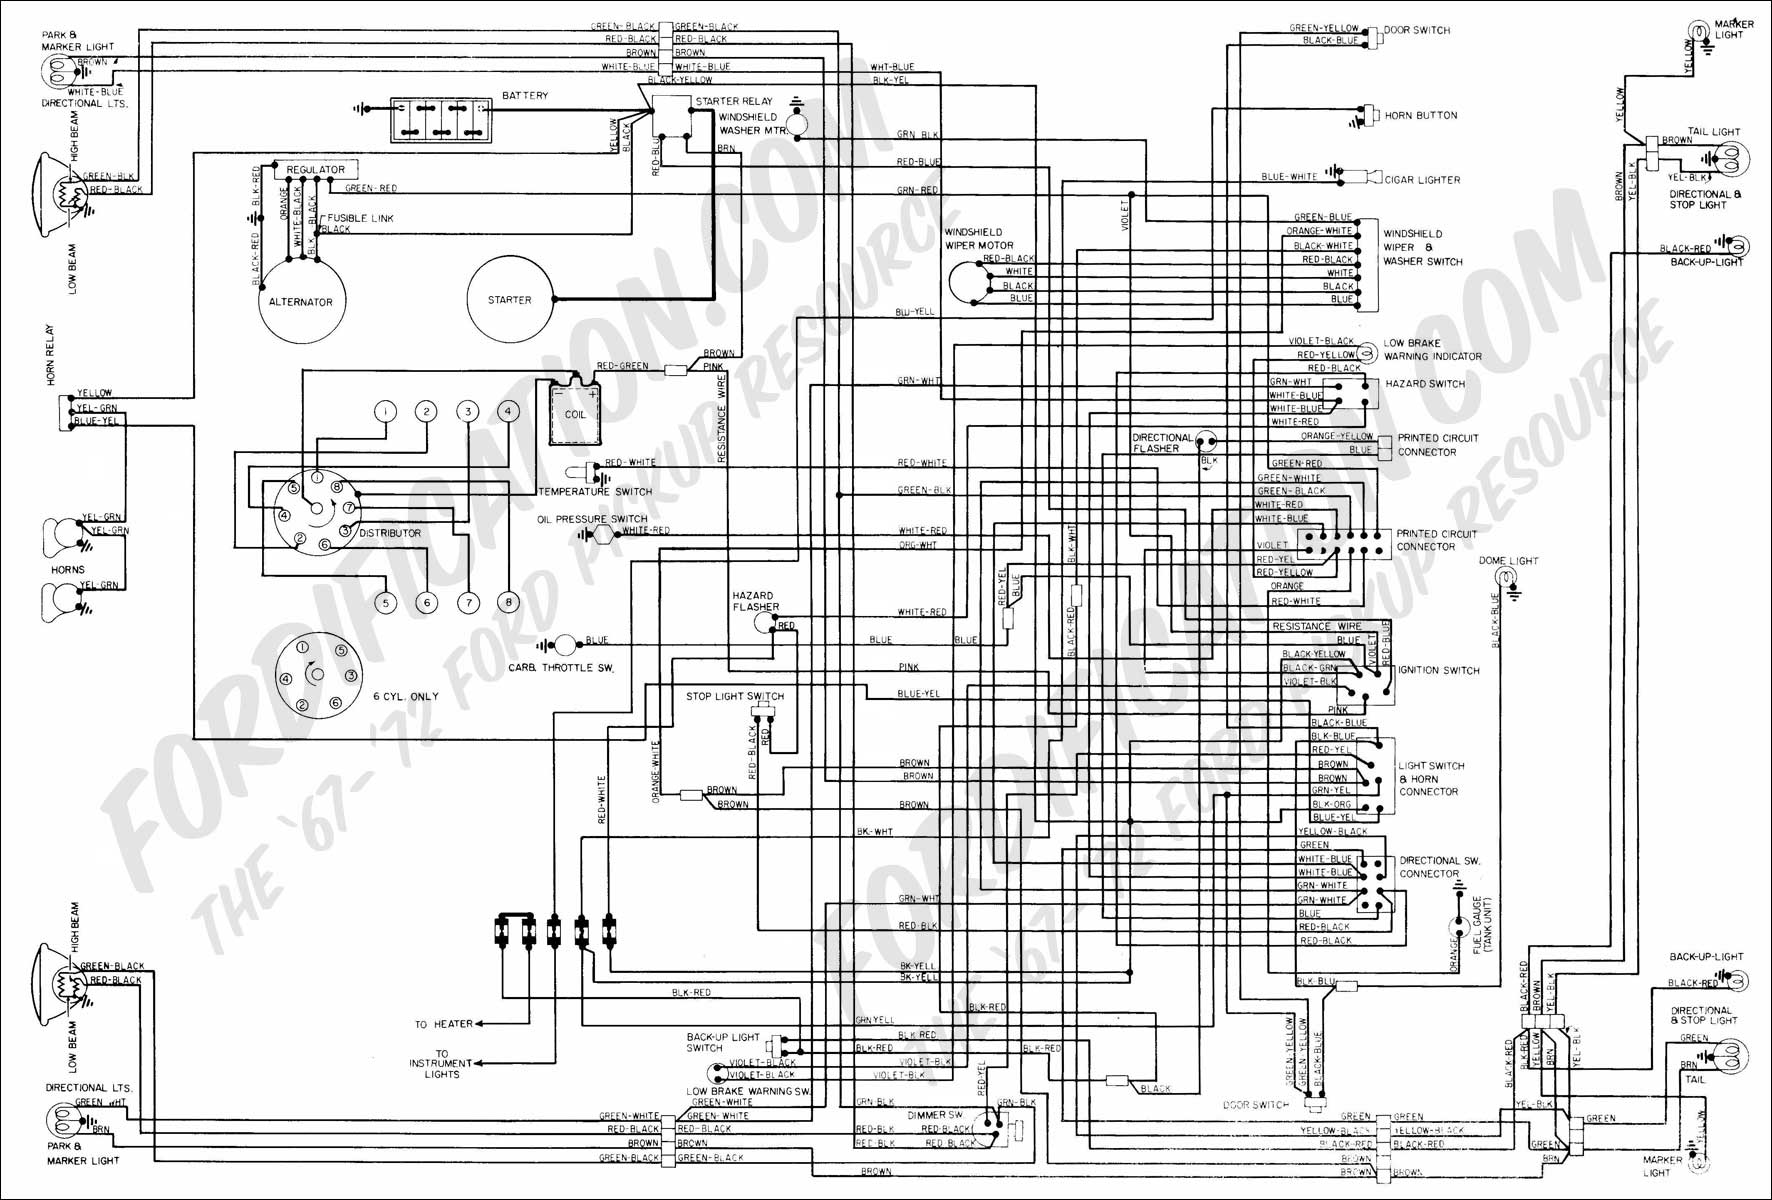 Schematics_h on 1999 Mercury Cougar Fuse Box Diagram